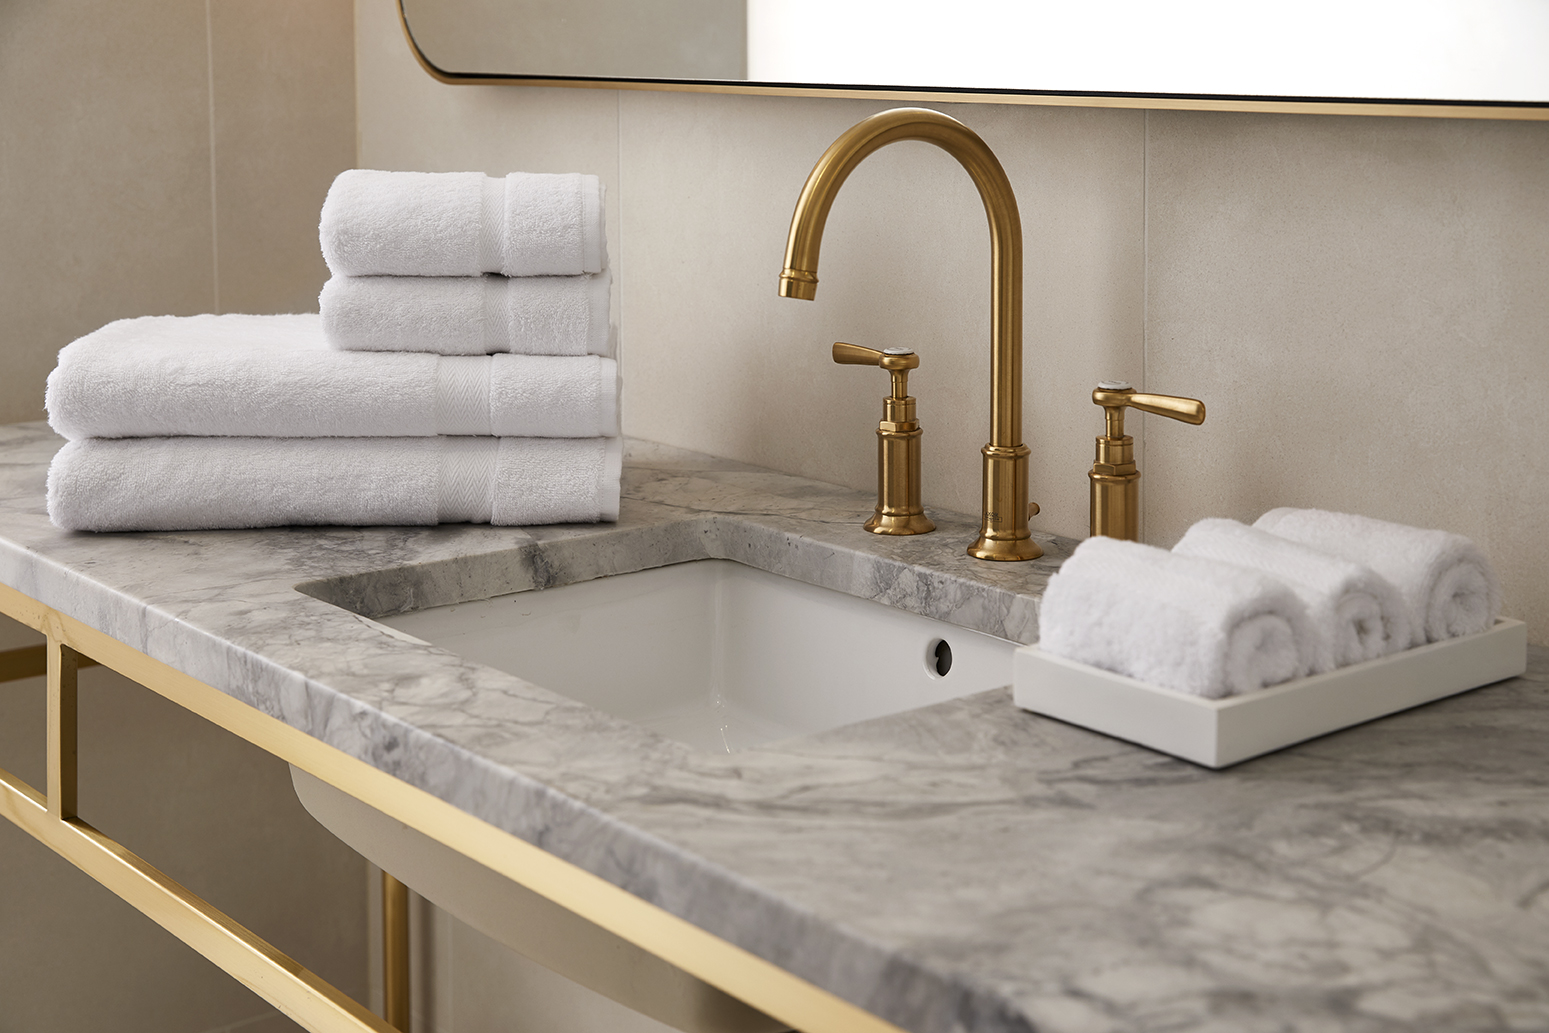 Revival_New_York_Luxury_Bath_Linens_Empire_Collection_Products_Hospitality_Hotels